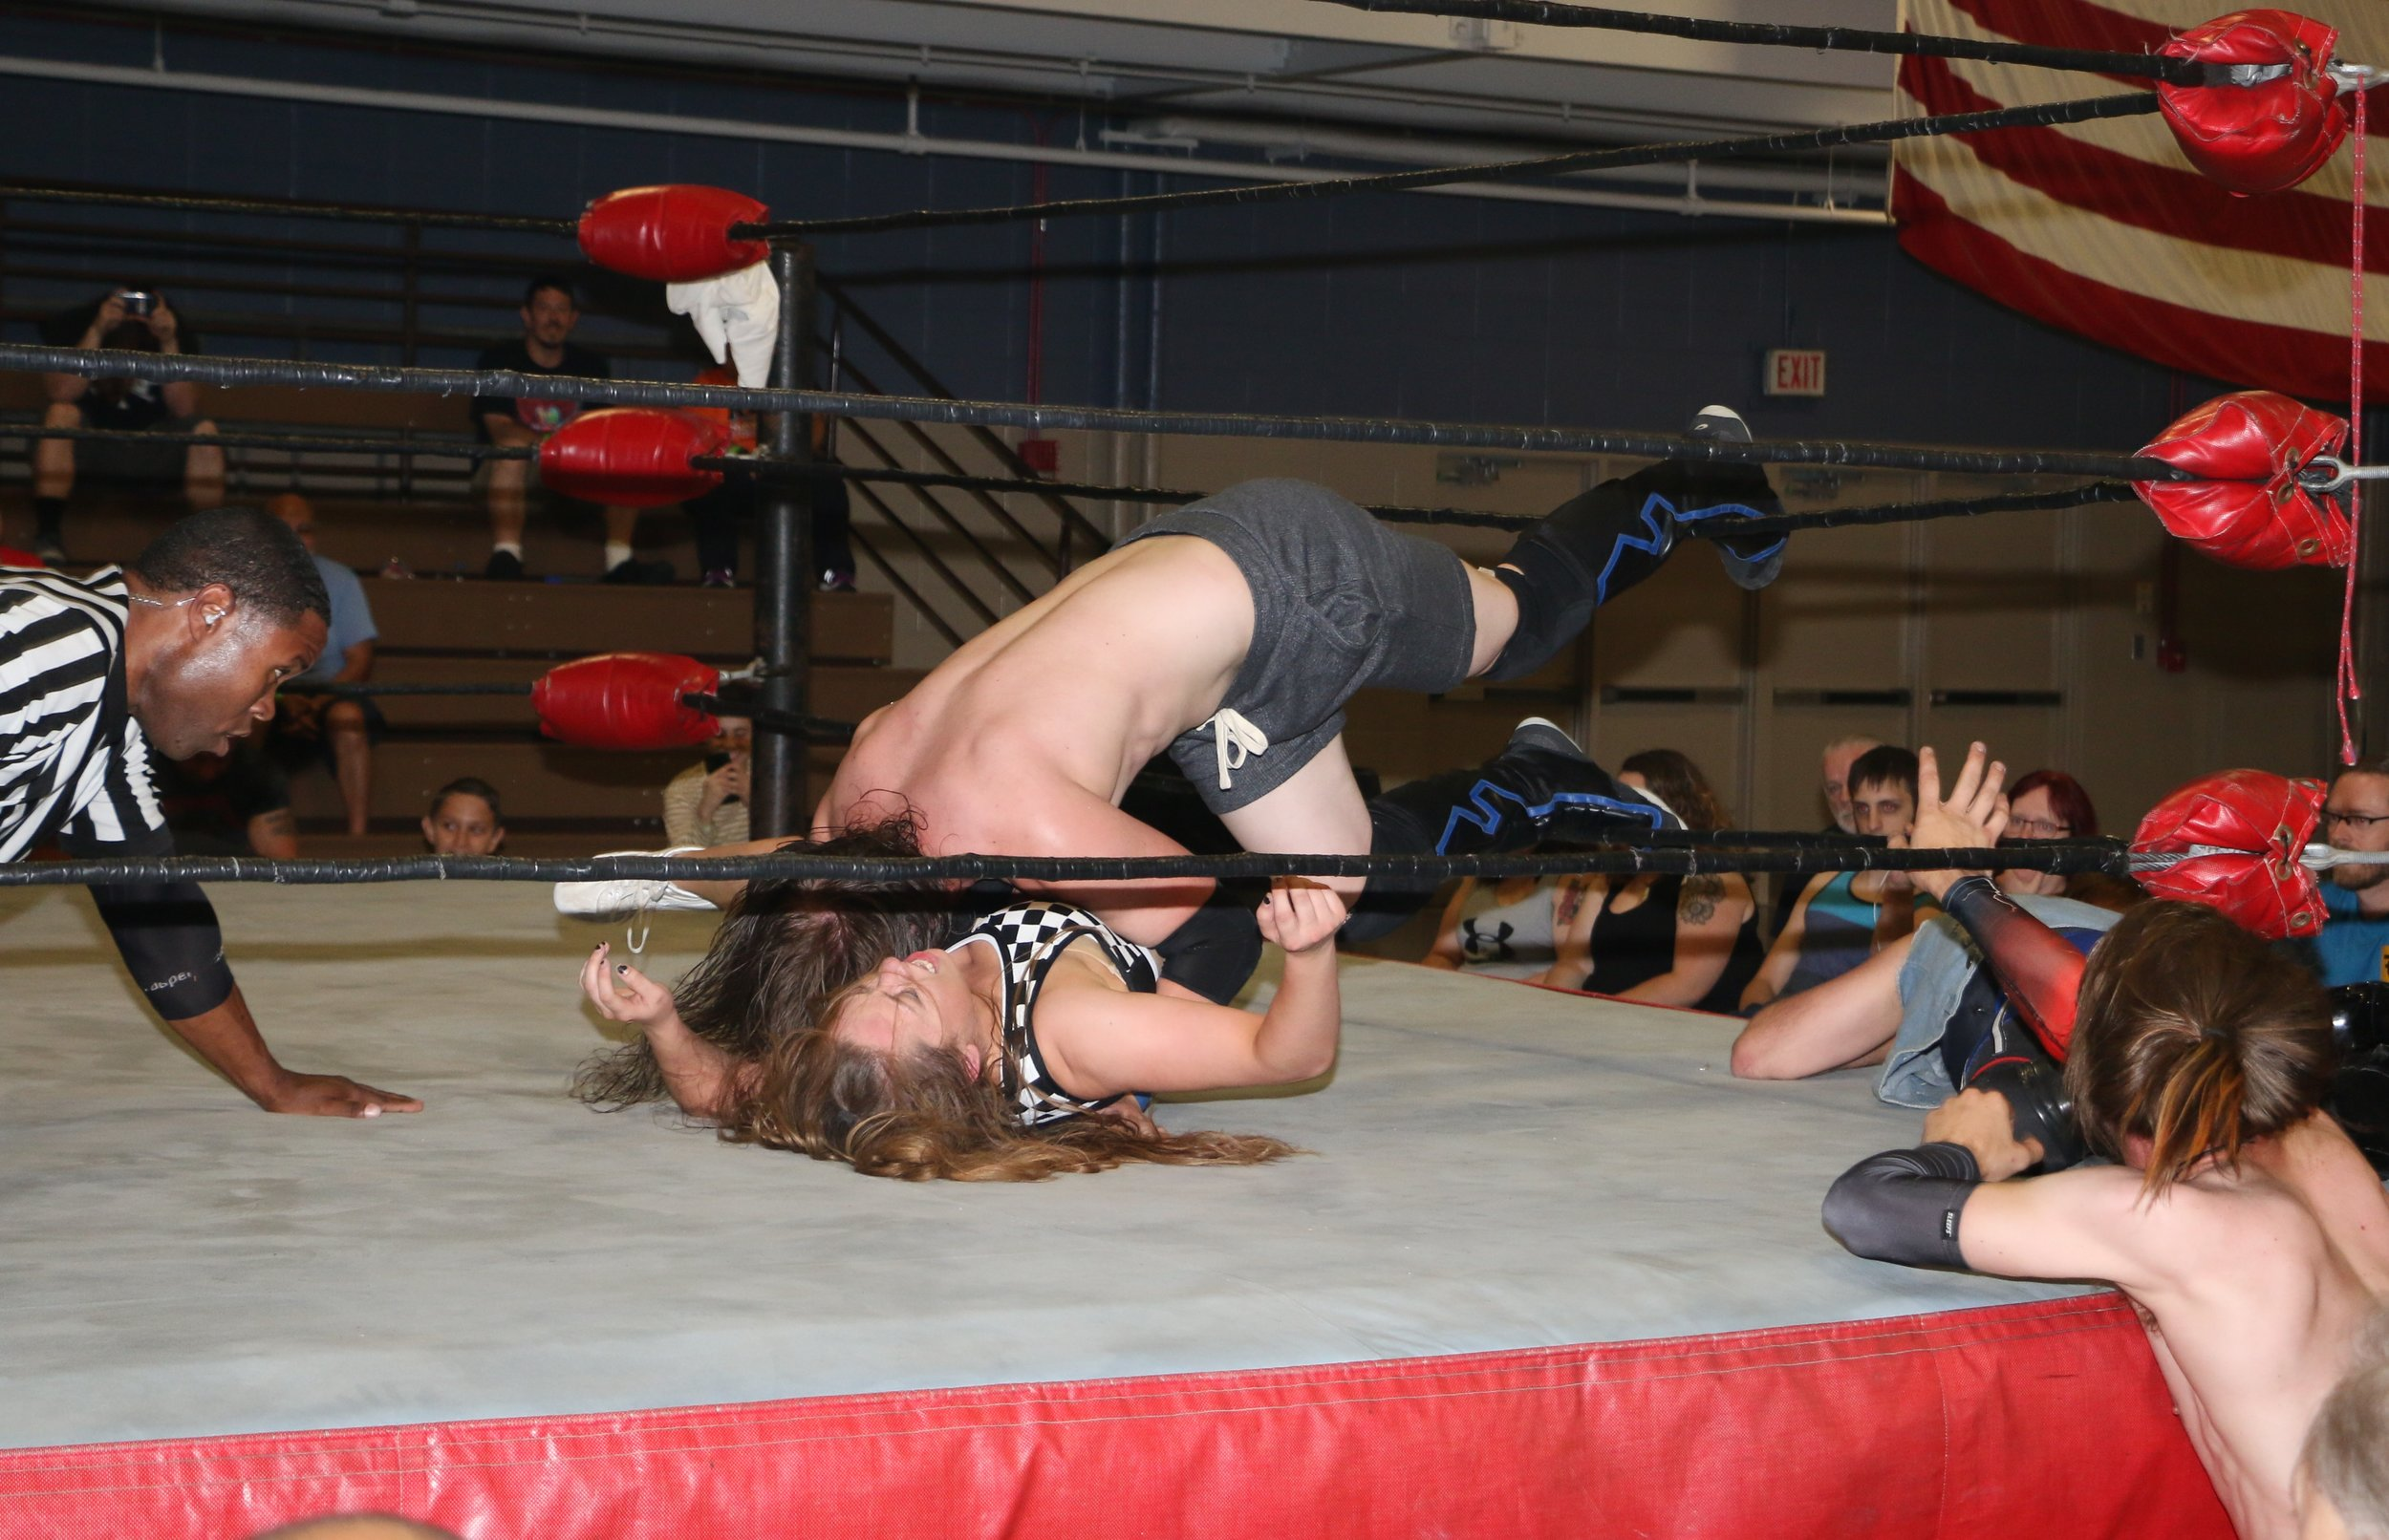 """Hipster Hunk"" Aaron Arsenal pins Missa Kate with his feet on the ropes."